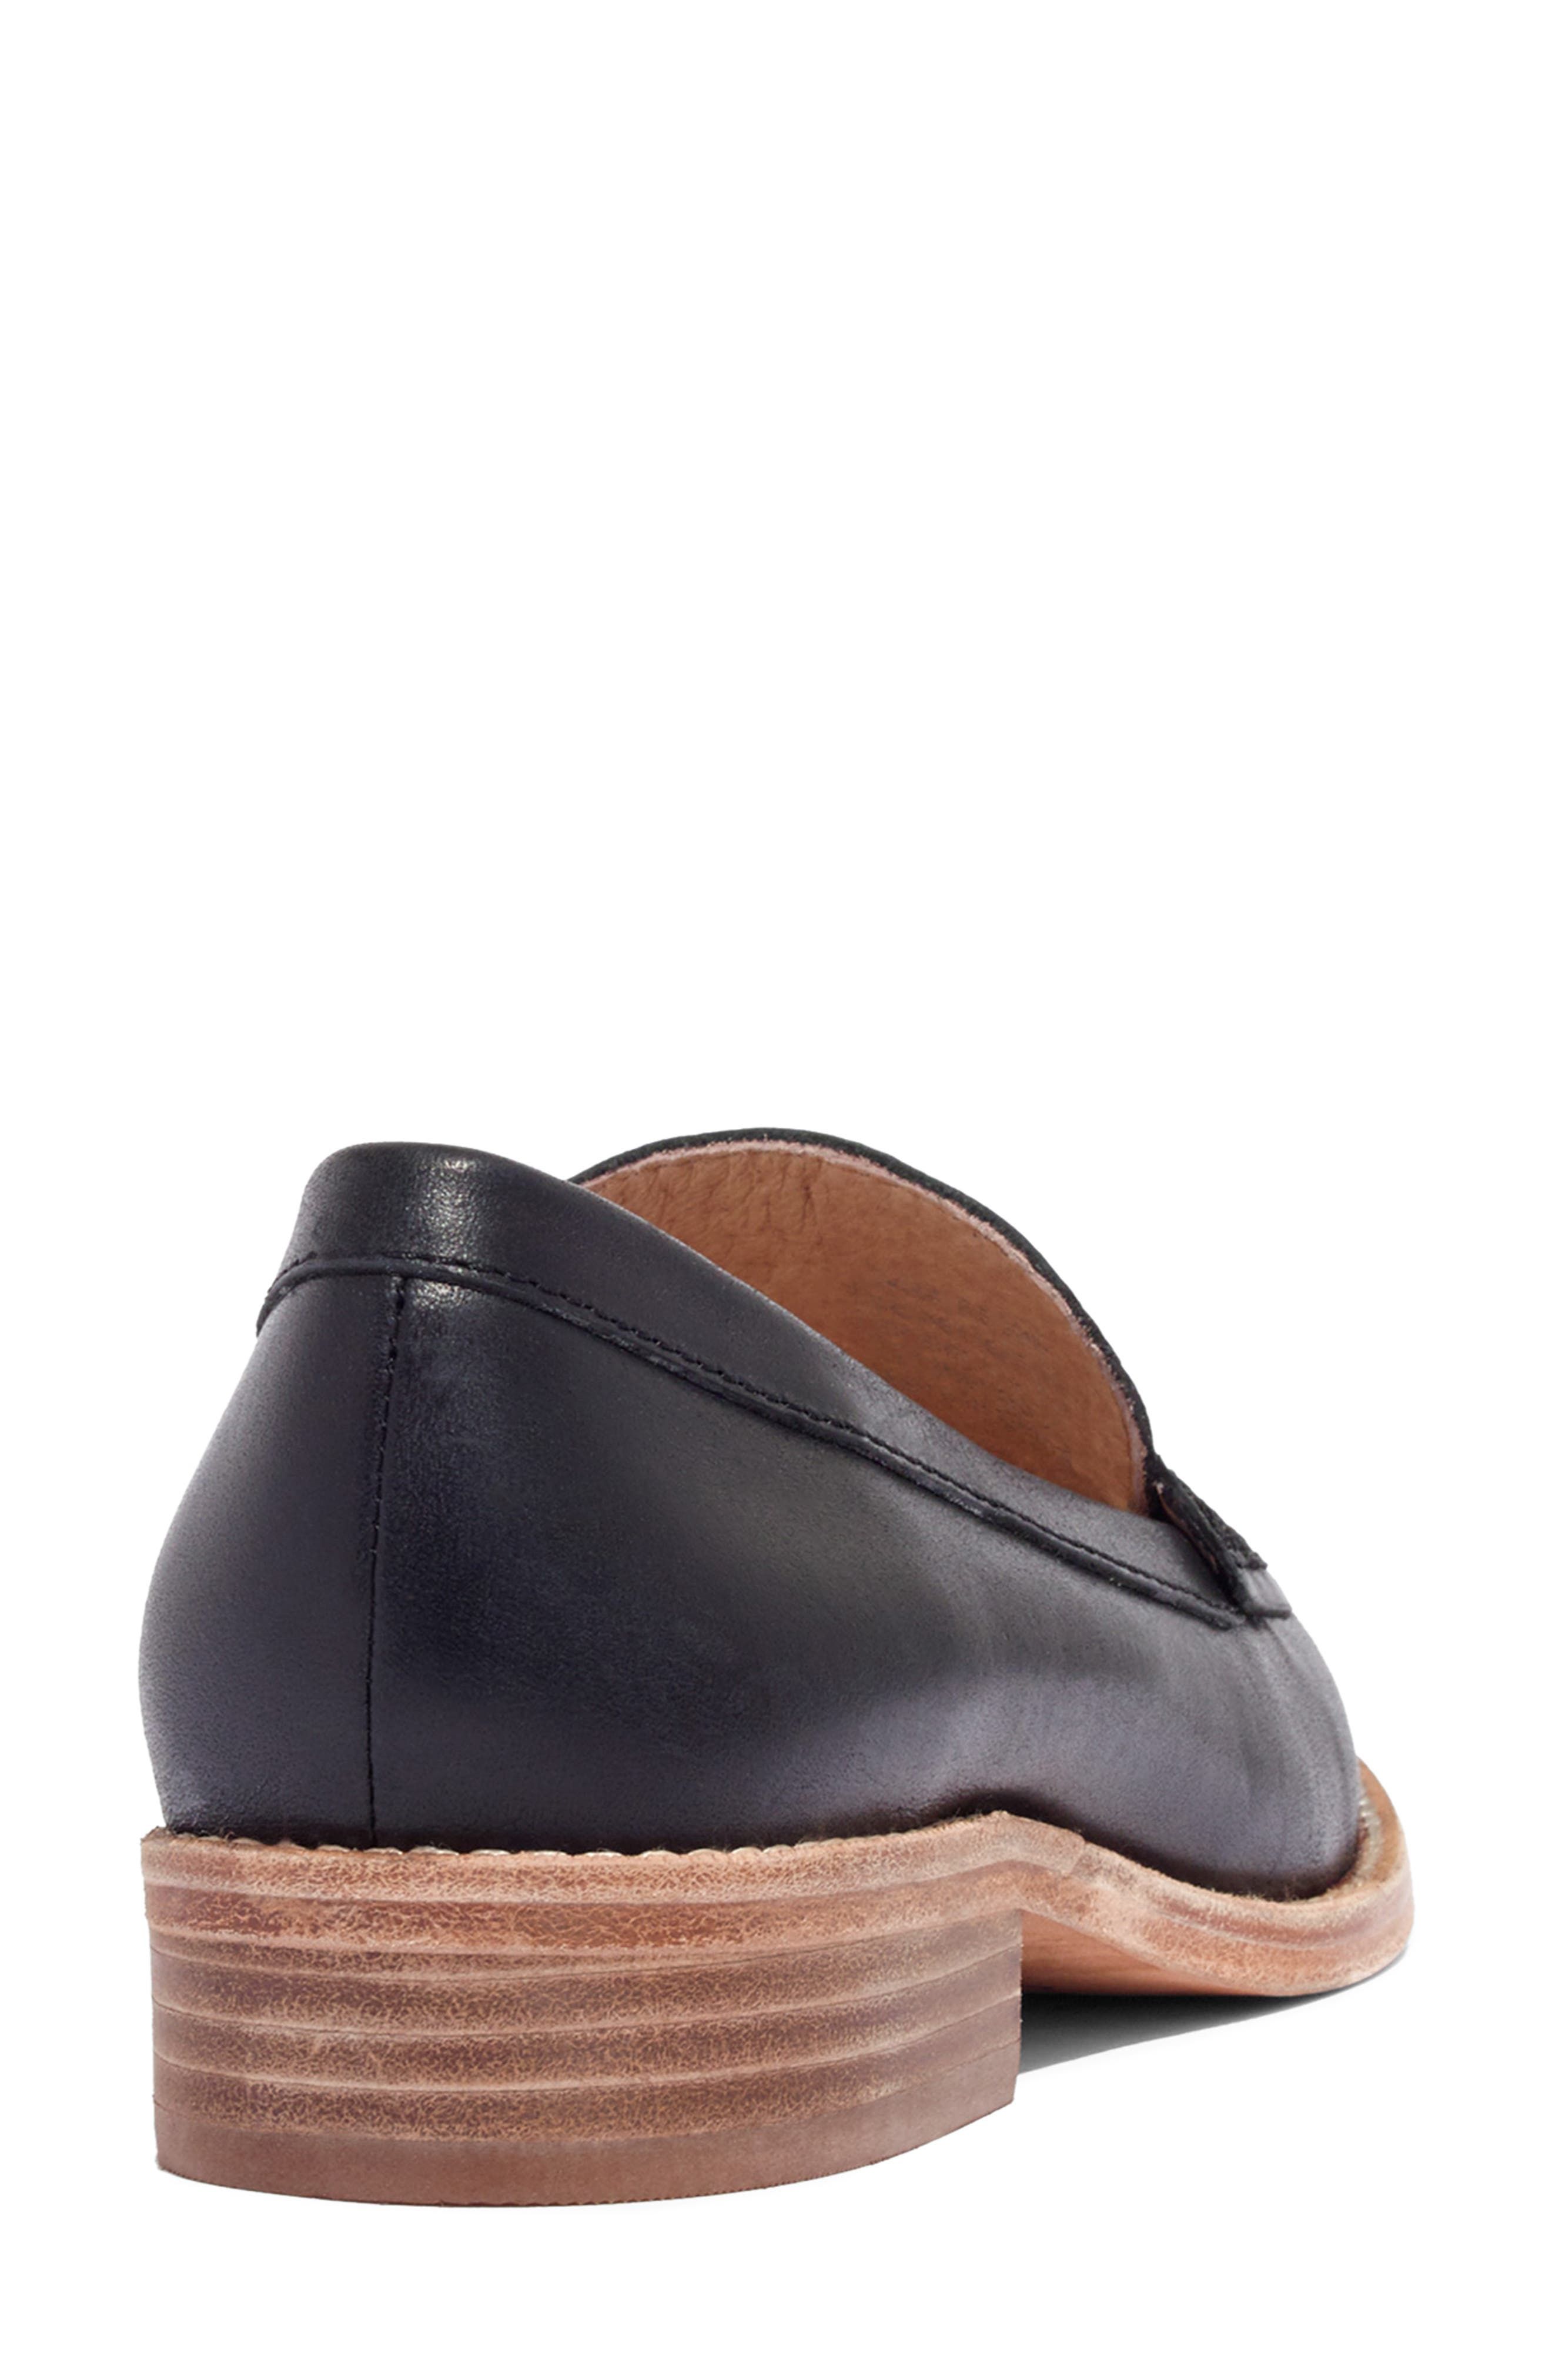 MADEWELL, The Elinor Loafer, Alternate thumbnail 9, color, BLACK LEATHER